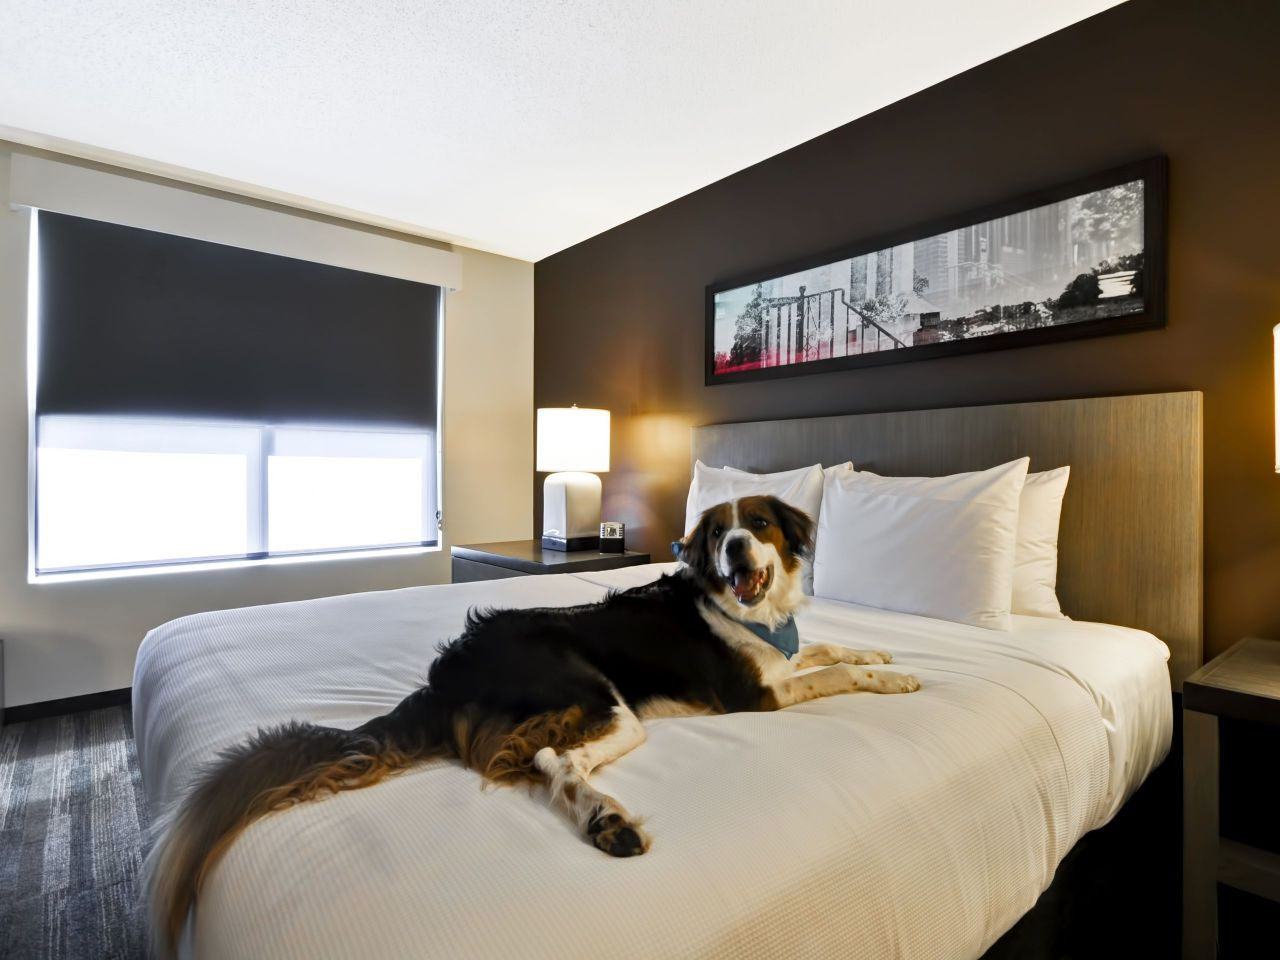 Hyatt Place St. Petersburg/Downtown Dog on the bed